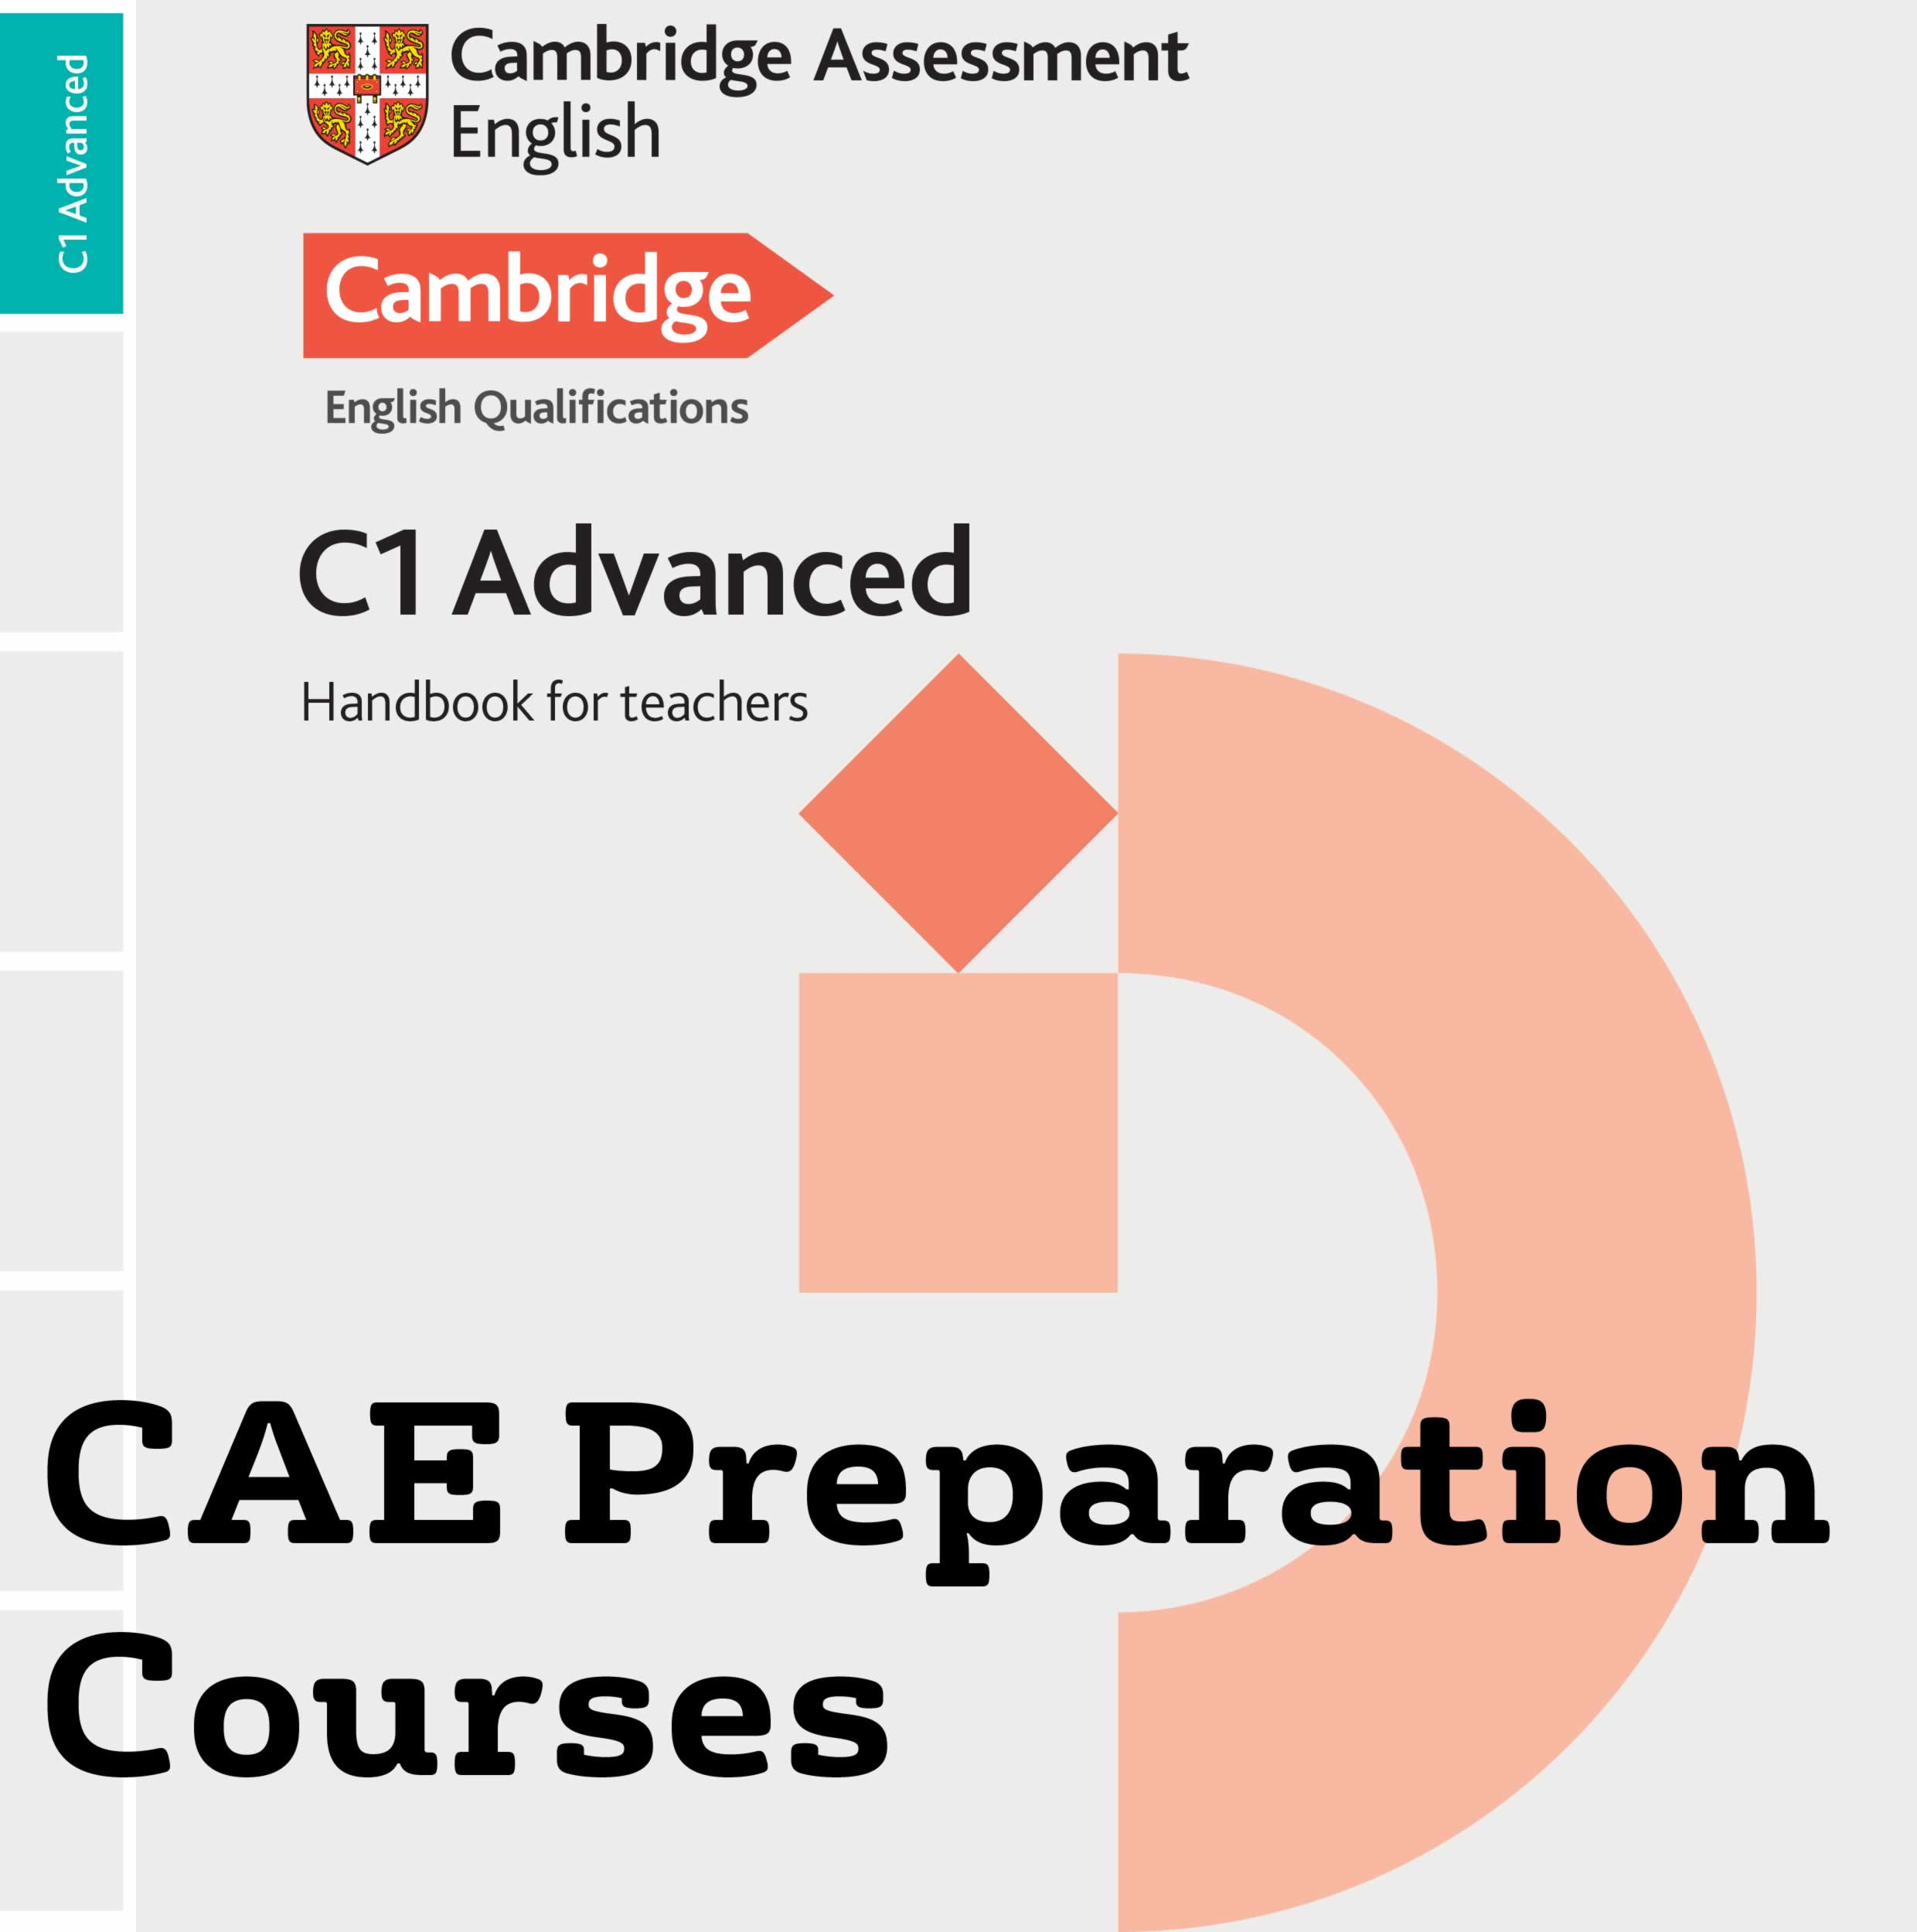 Preparation courses for Advanced